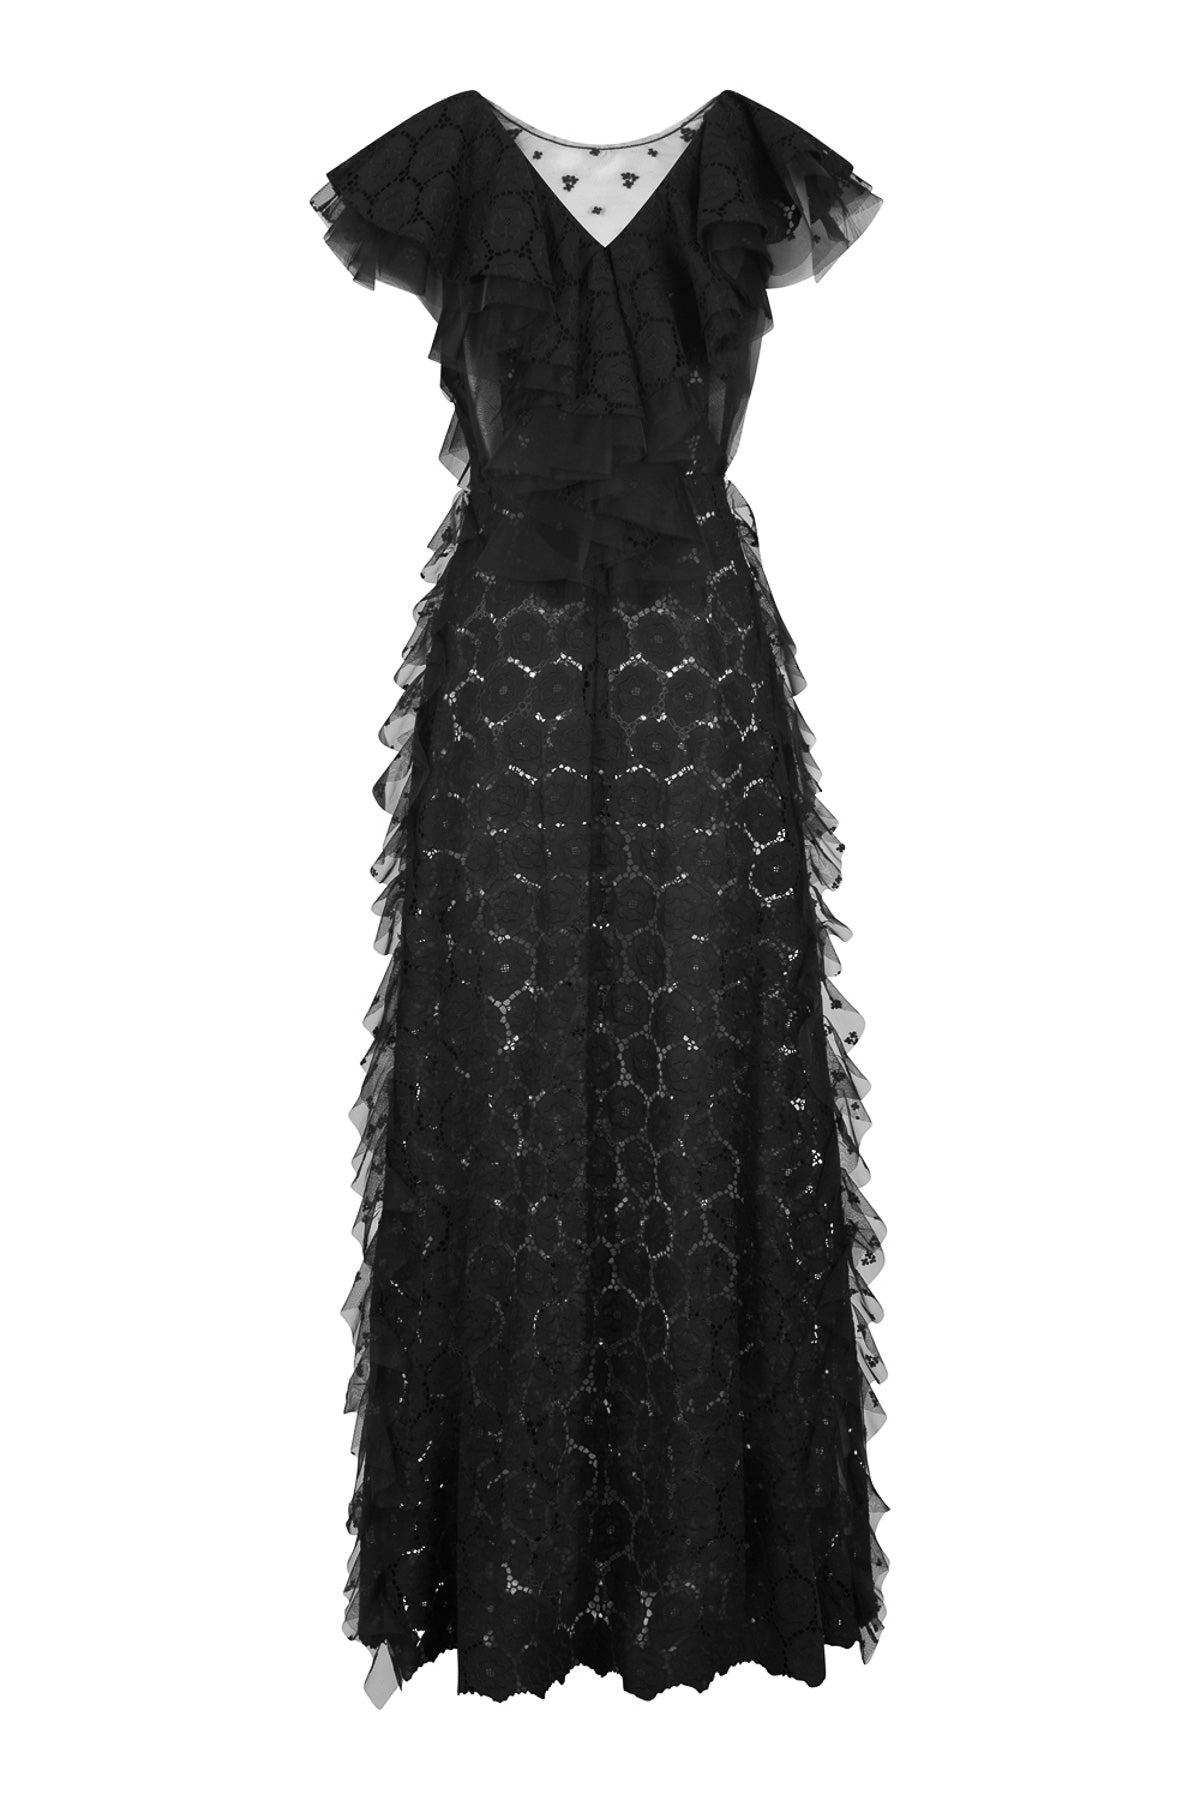 sleeveless black lace maxi dress